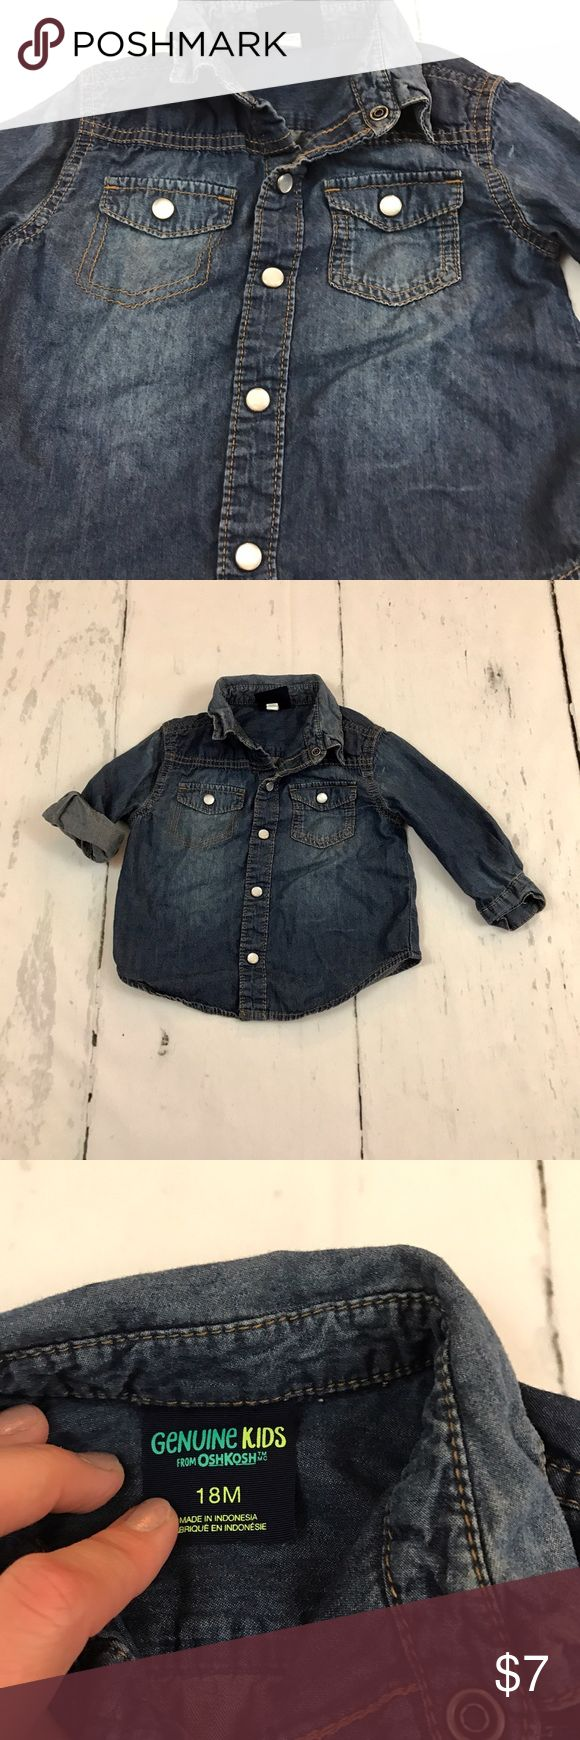 Denim Shirt with Western Pearl Snaps Such a cute outfit maker for a toddler. I often used it like a jacket over my sons cute tees.could also be Western Wear with pearl snaps. Lightweight, soft denim. EUC Osh Kosh Shirts & Tops Button Down Shirts